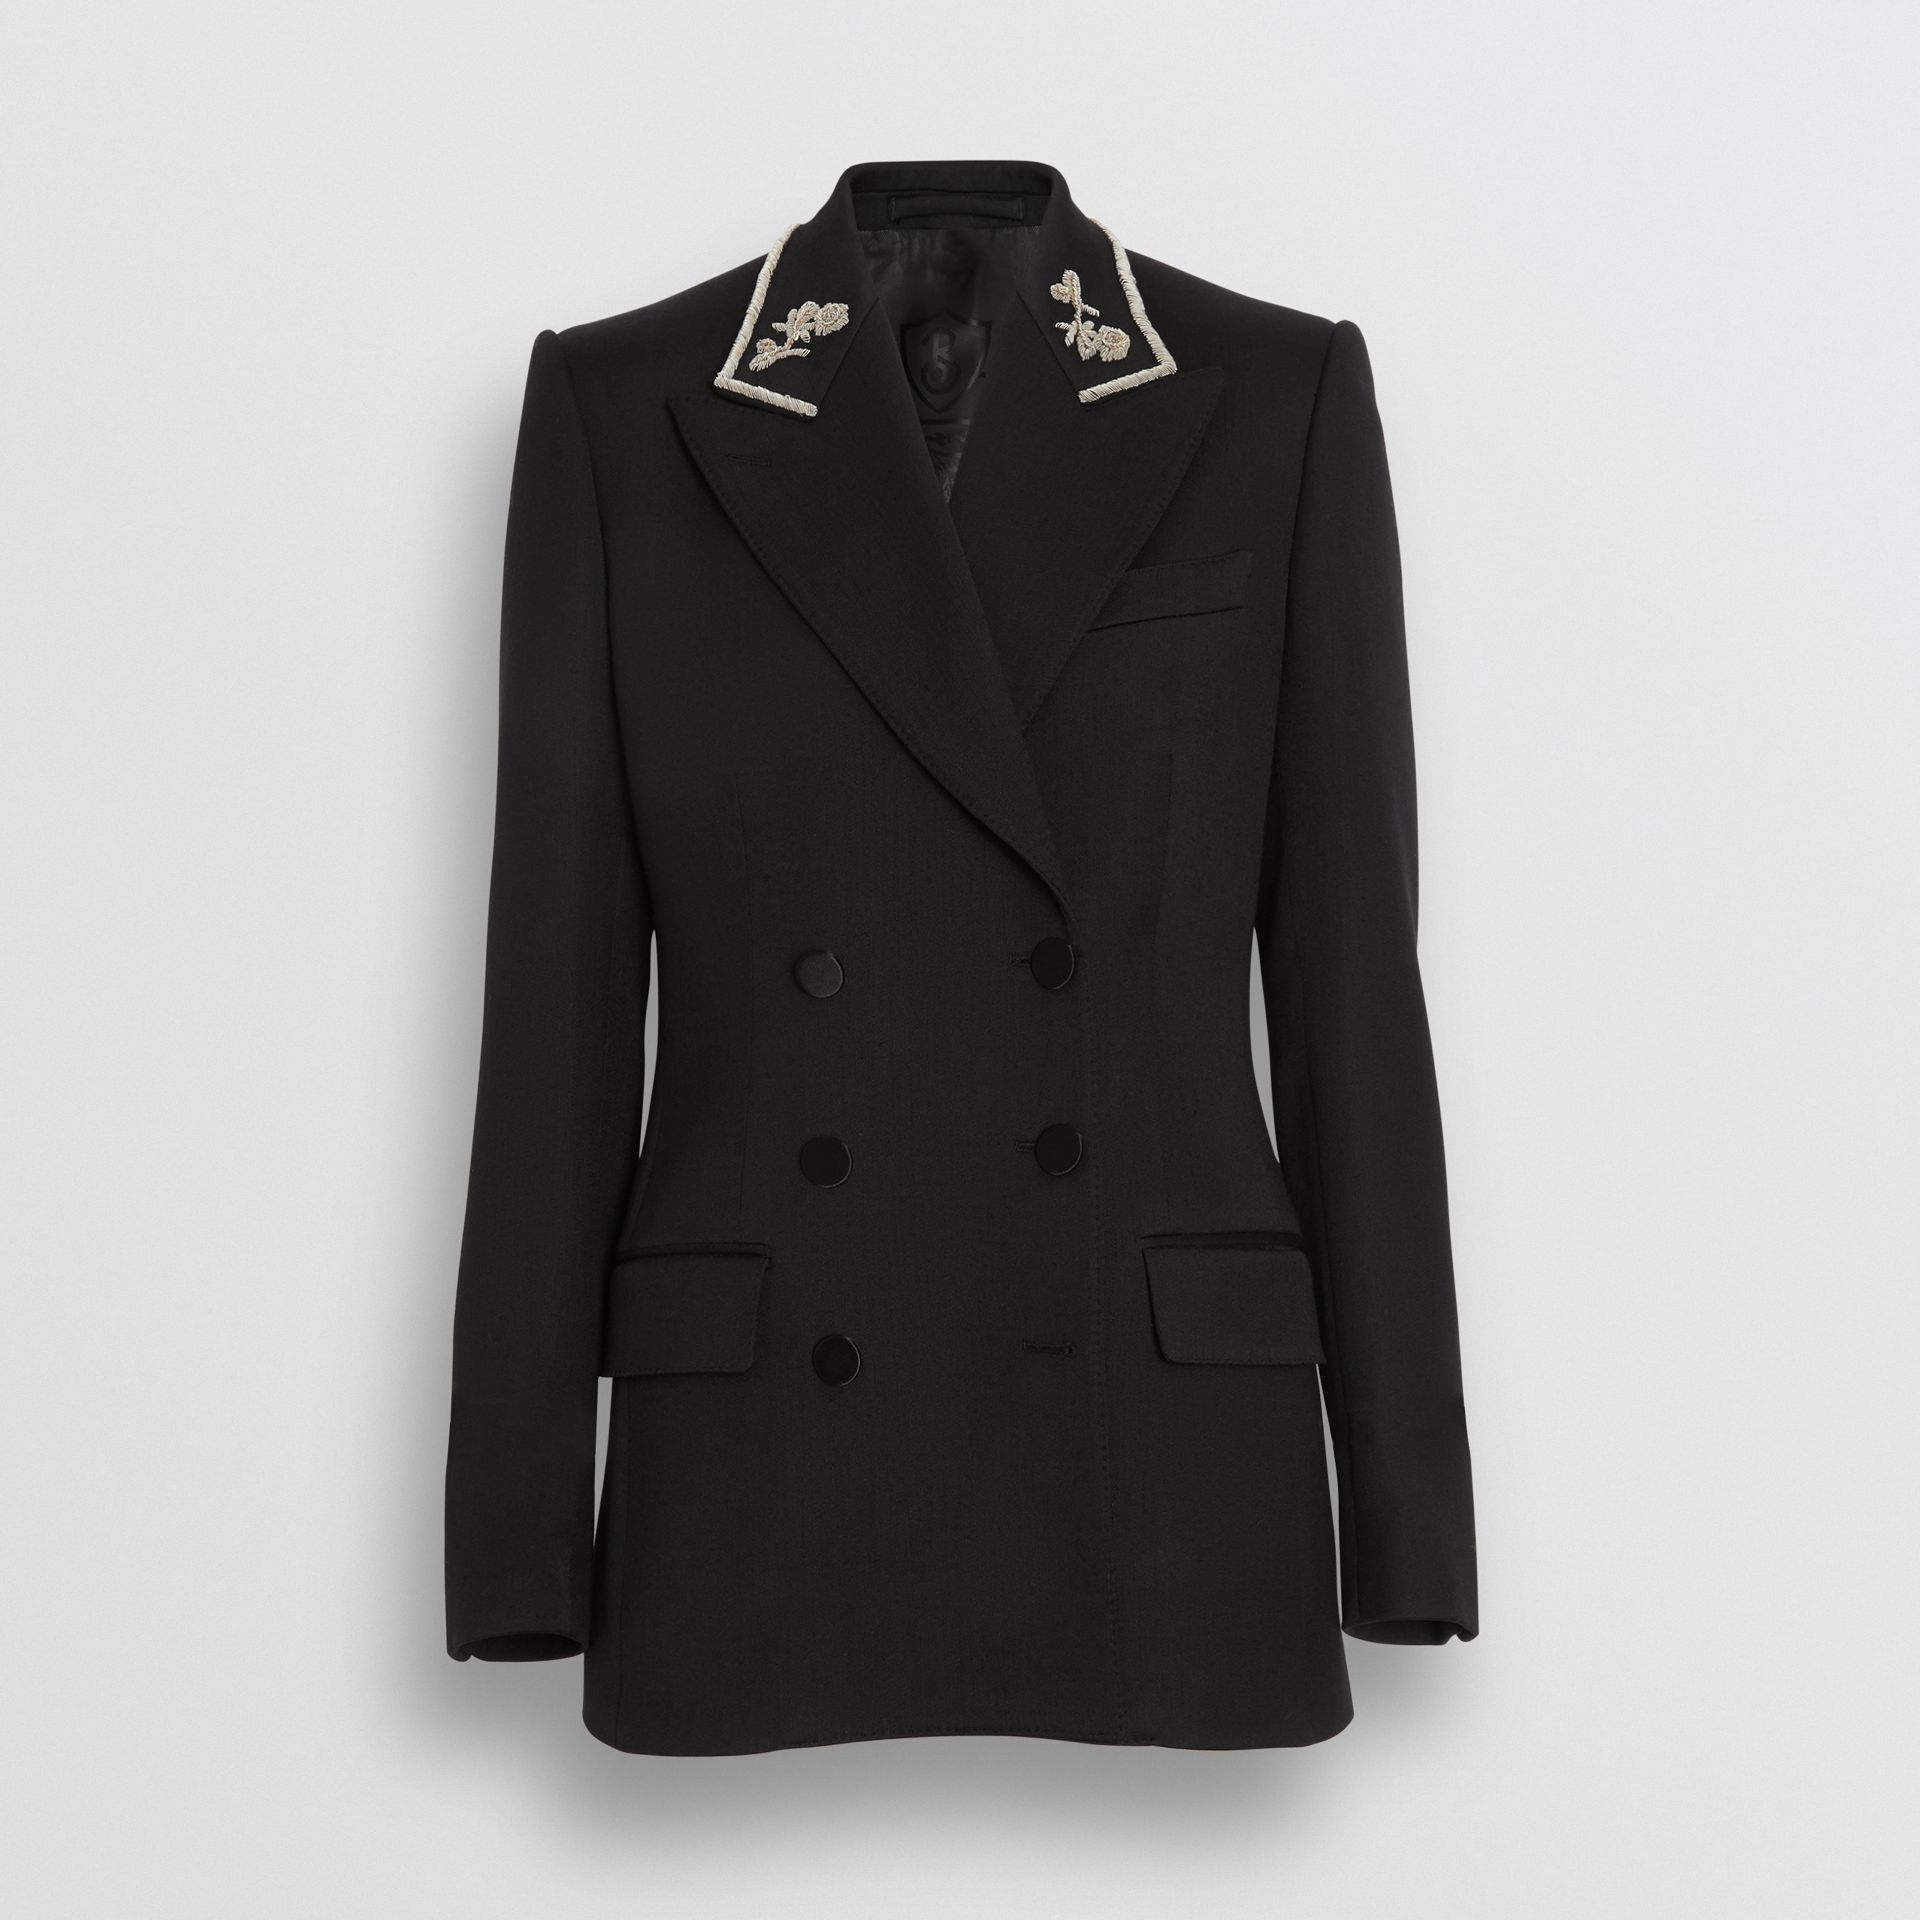 Bullion Stretch Wool Double-breasted Jacket in Black - Women | Burberry United States - gallery image 3